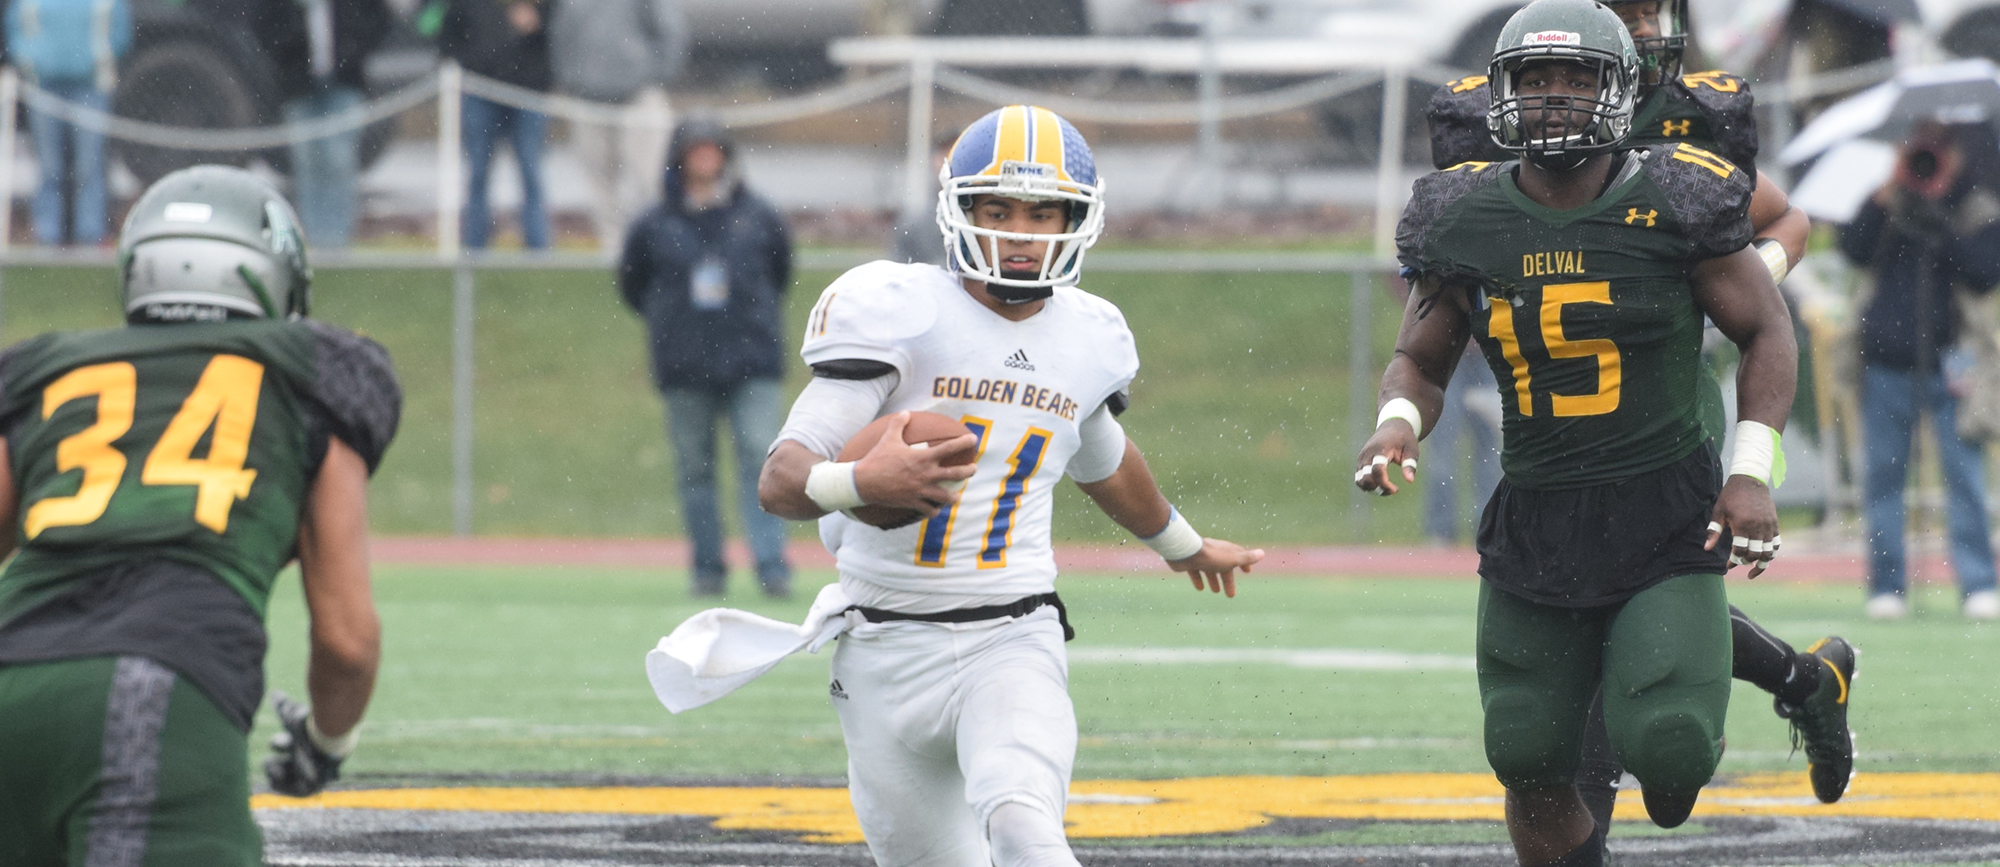 Senior quarterback Anthony Service compiled 252 yards of total offense in Western New England's 35-0 loss to Delaware Valley in the first round of the NCAA Tournament on Saturday.